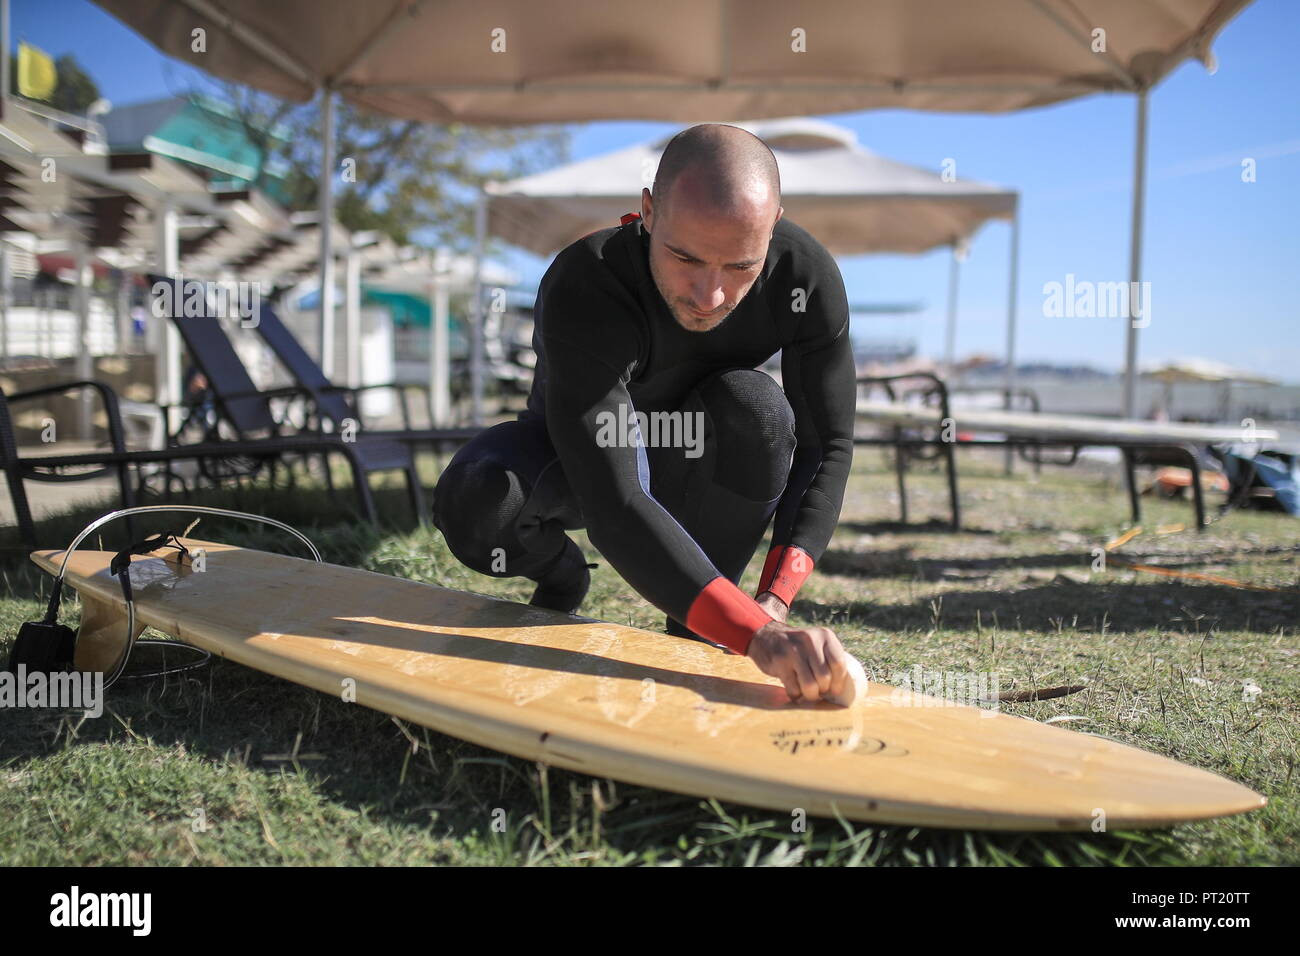 Sochi, Russia. 05th Oct, 2018. A surfer waxes a shortboard at the 2018 Russian Surfing Championships at the Khosta Rika surfing spot on the Black Sea coast. Sergei Bobylev/TASS Credit: ITAR-TASS News Agency/Alamy Live News - Stock Image